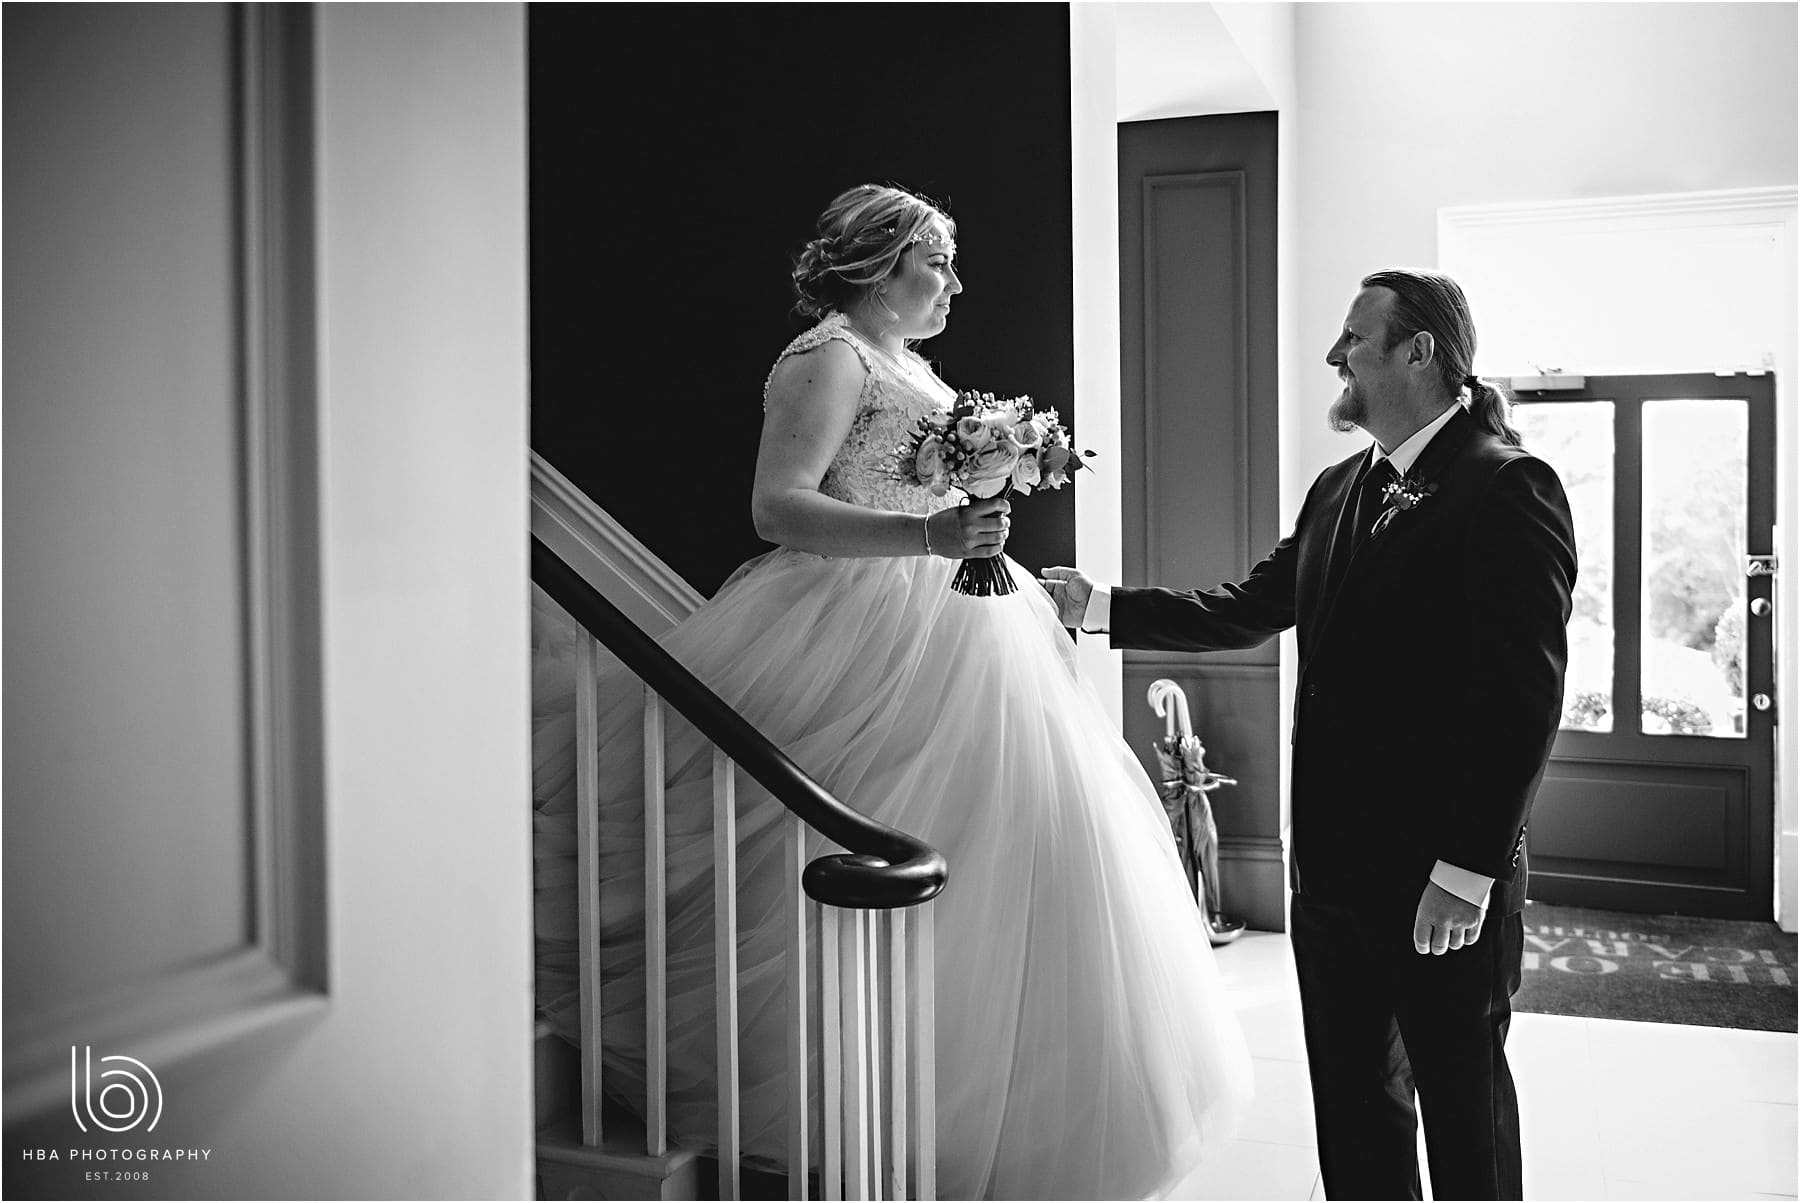 the bride's dad seeing his daughter for the first time